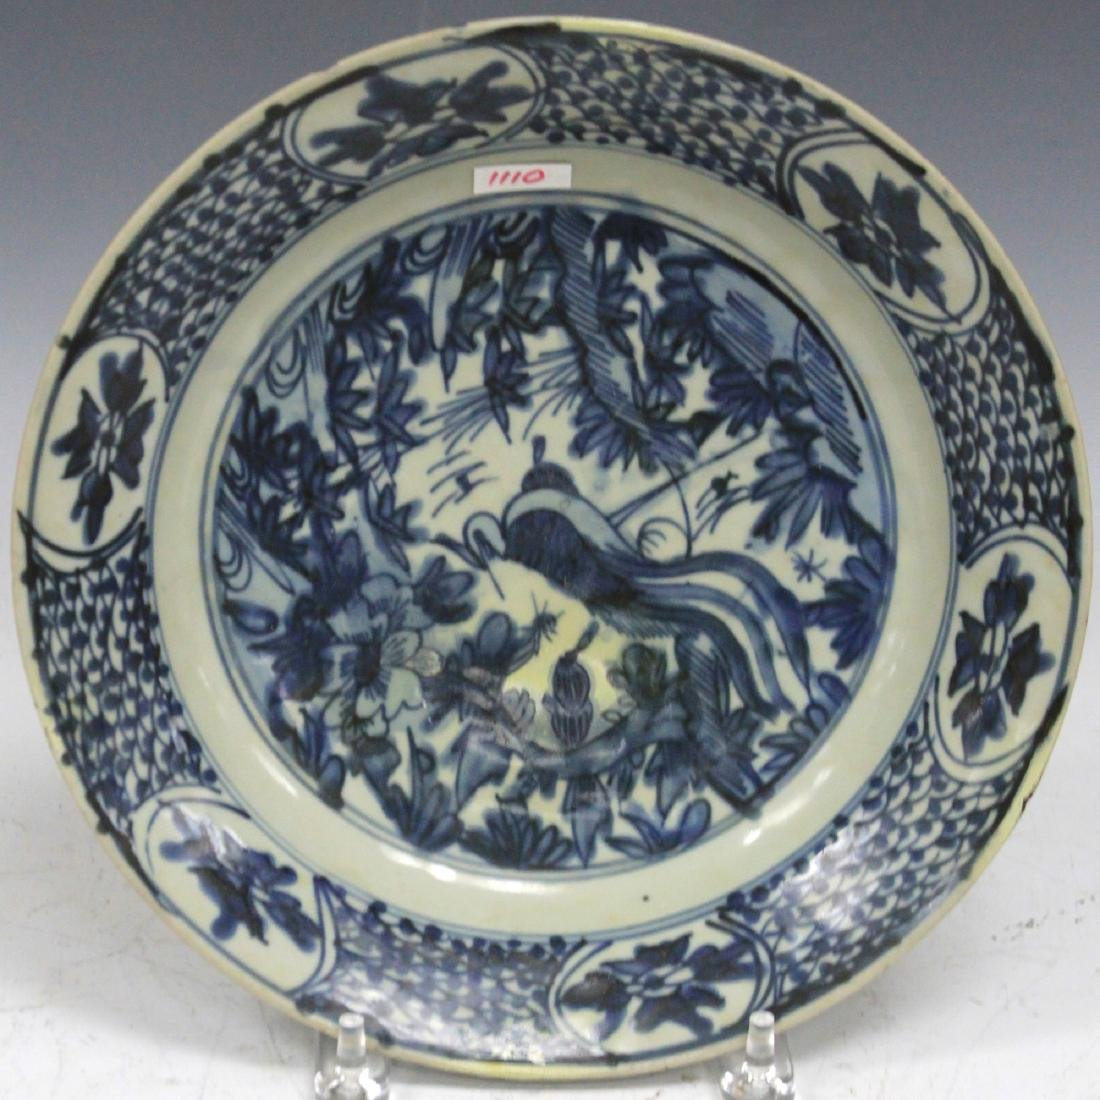 16TH/17TH C. SWATOW BLUE & WHITE PLATE